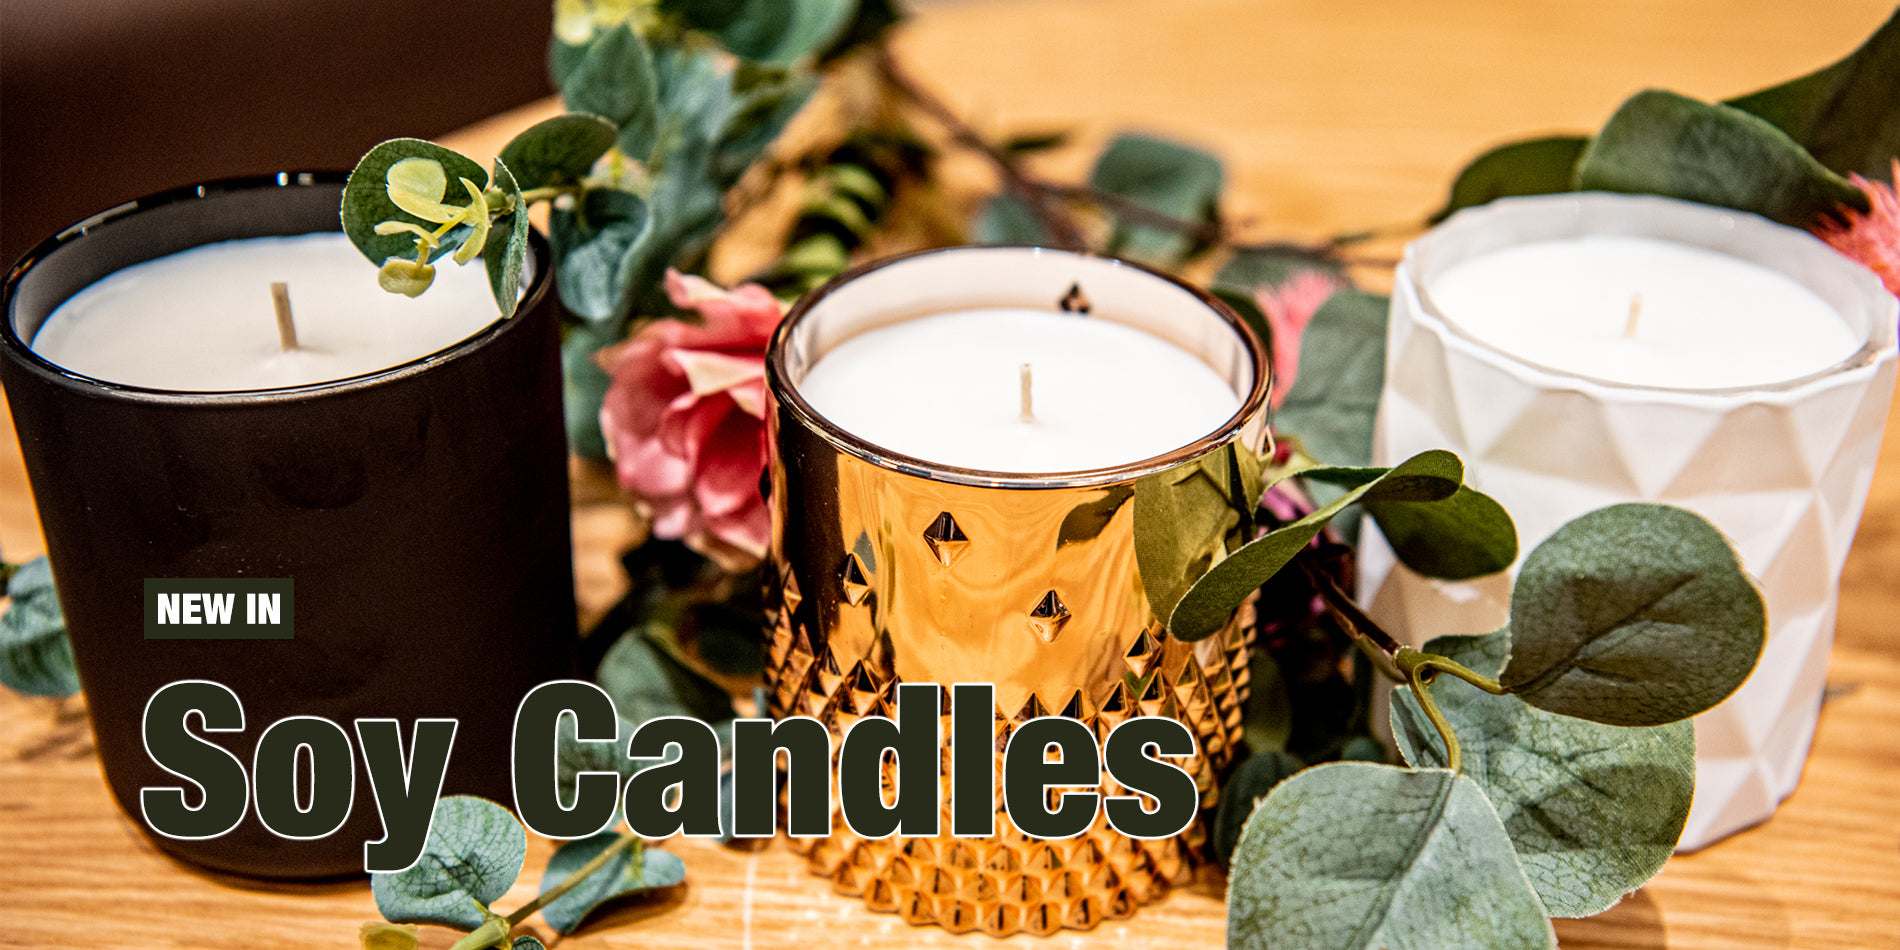 carousel New in - Candles